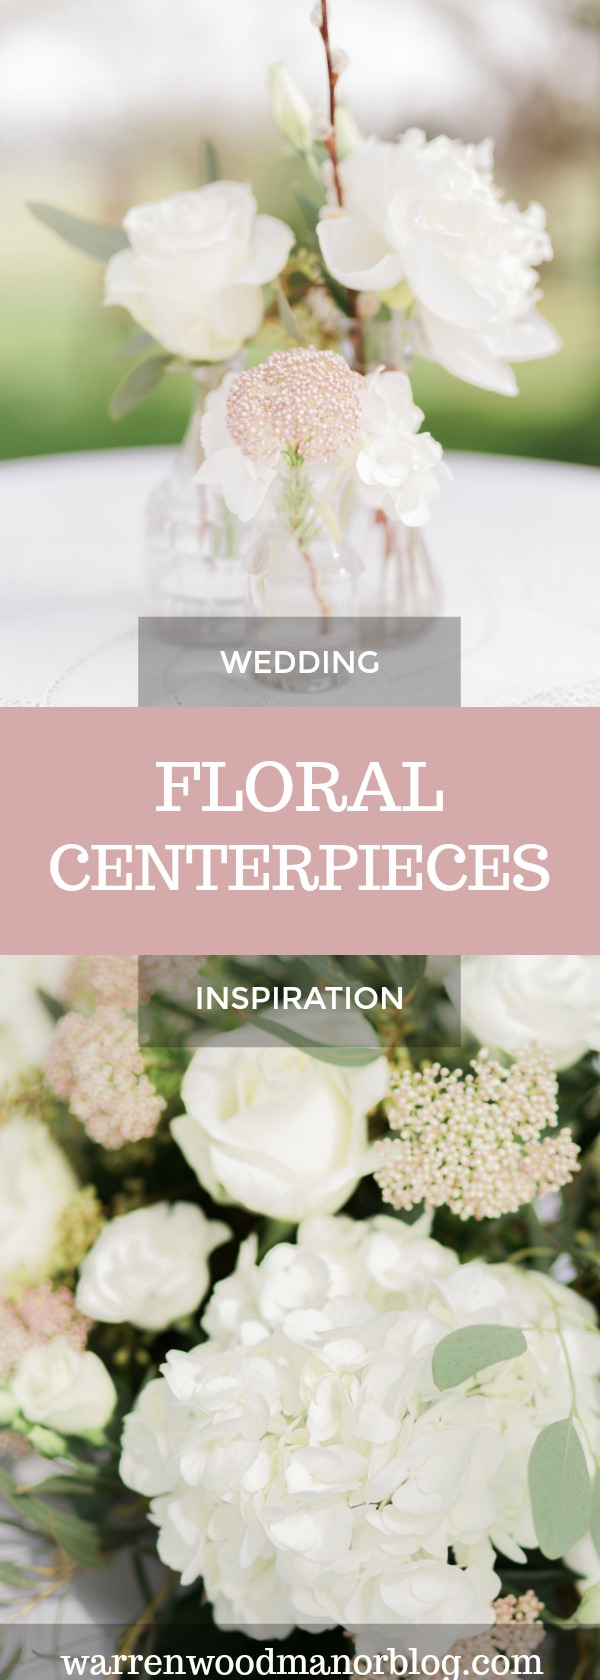 Get inspiration from a gallery of different floral centerpieces